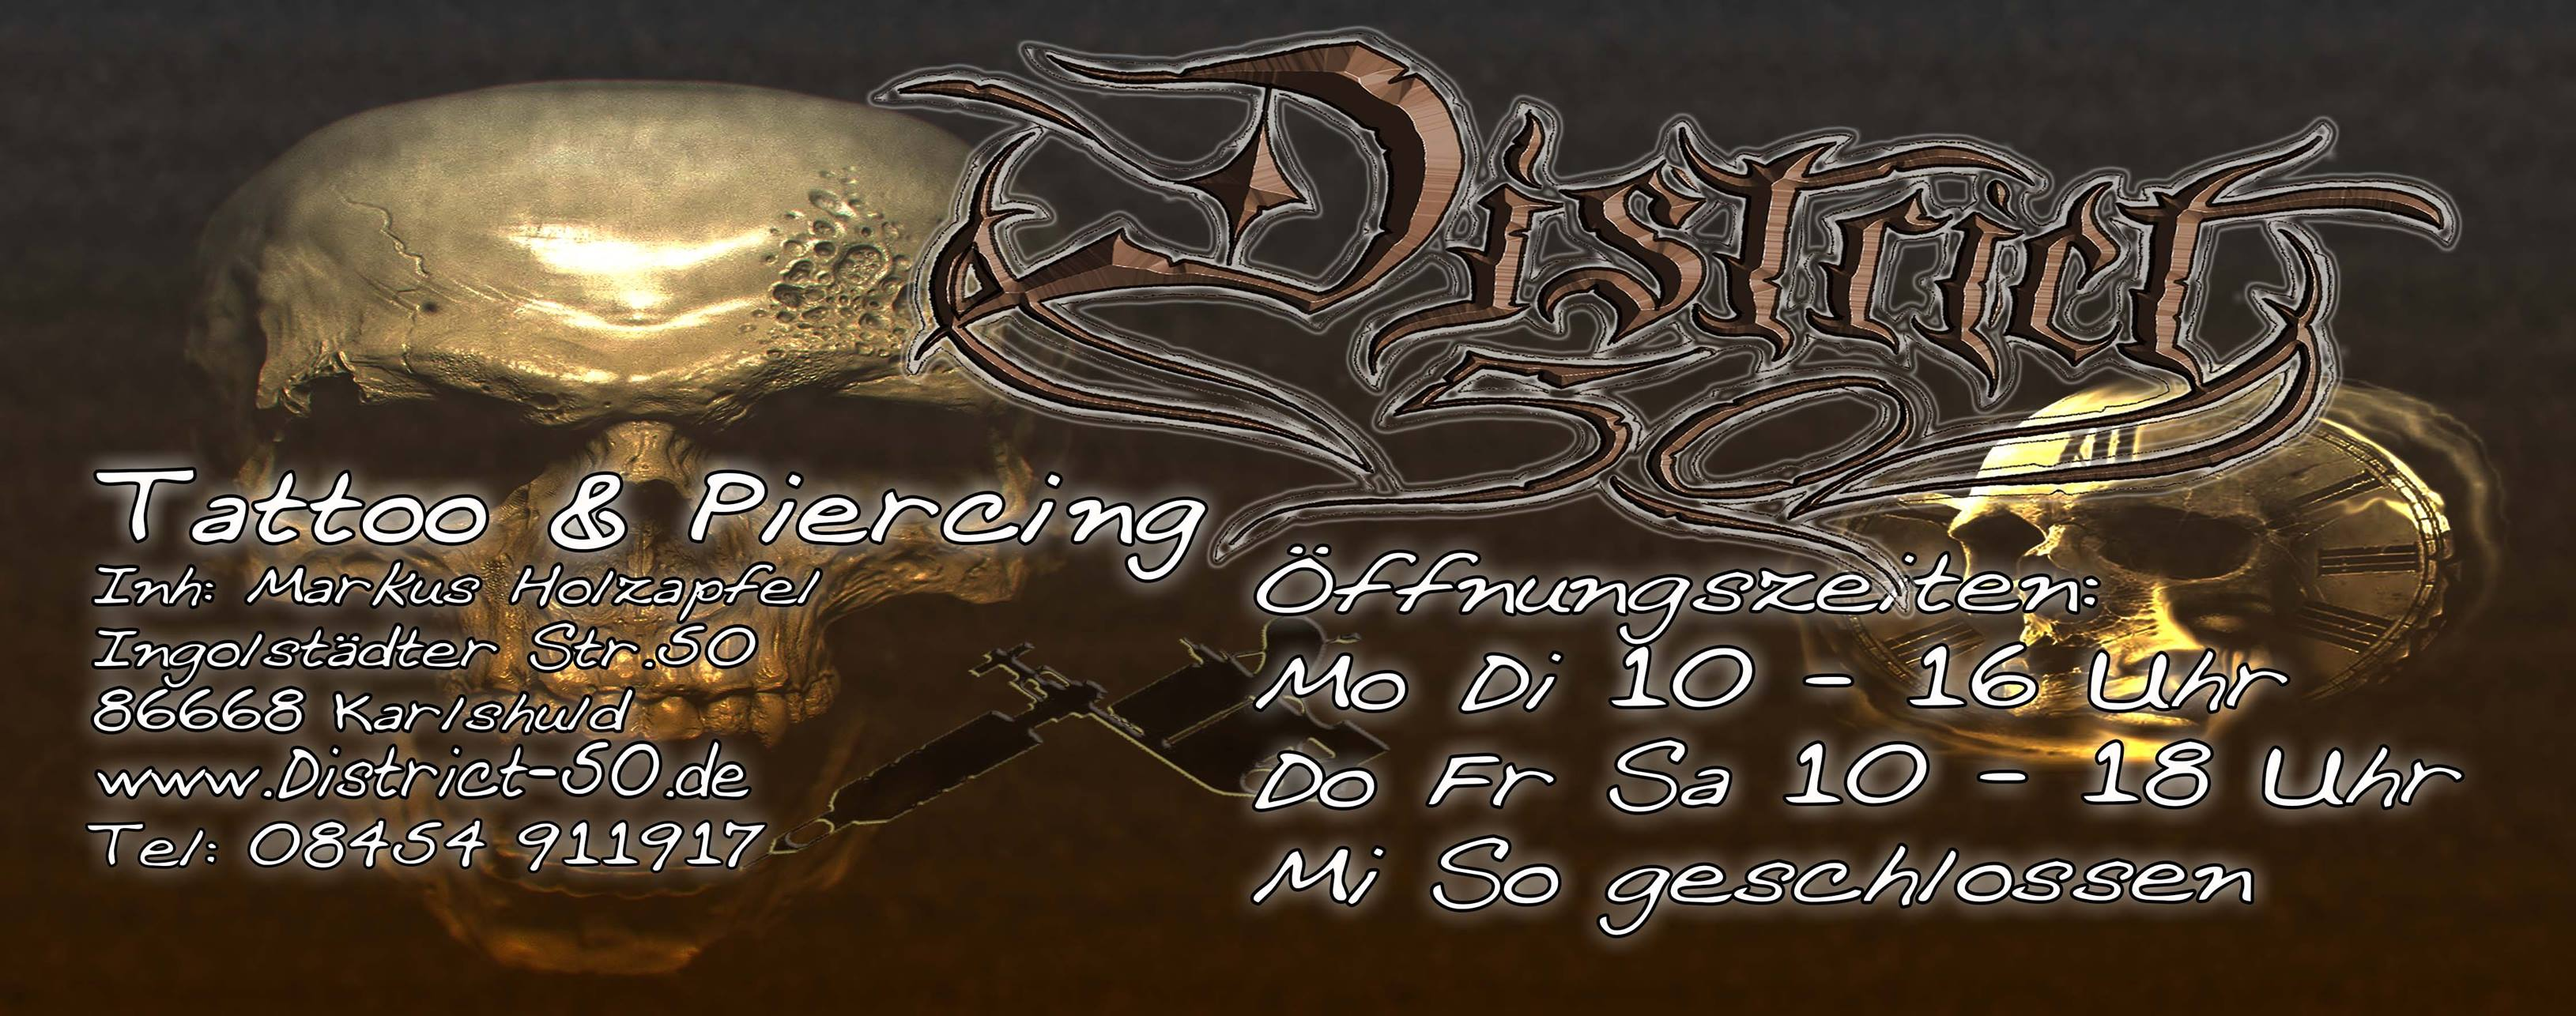 District 50 Tattoo & Piercing